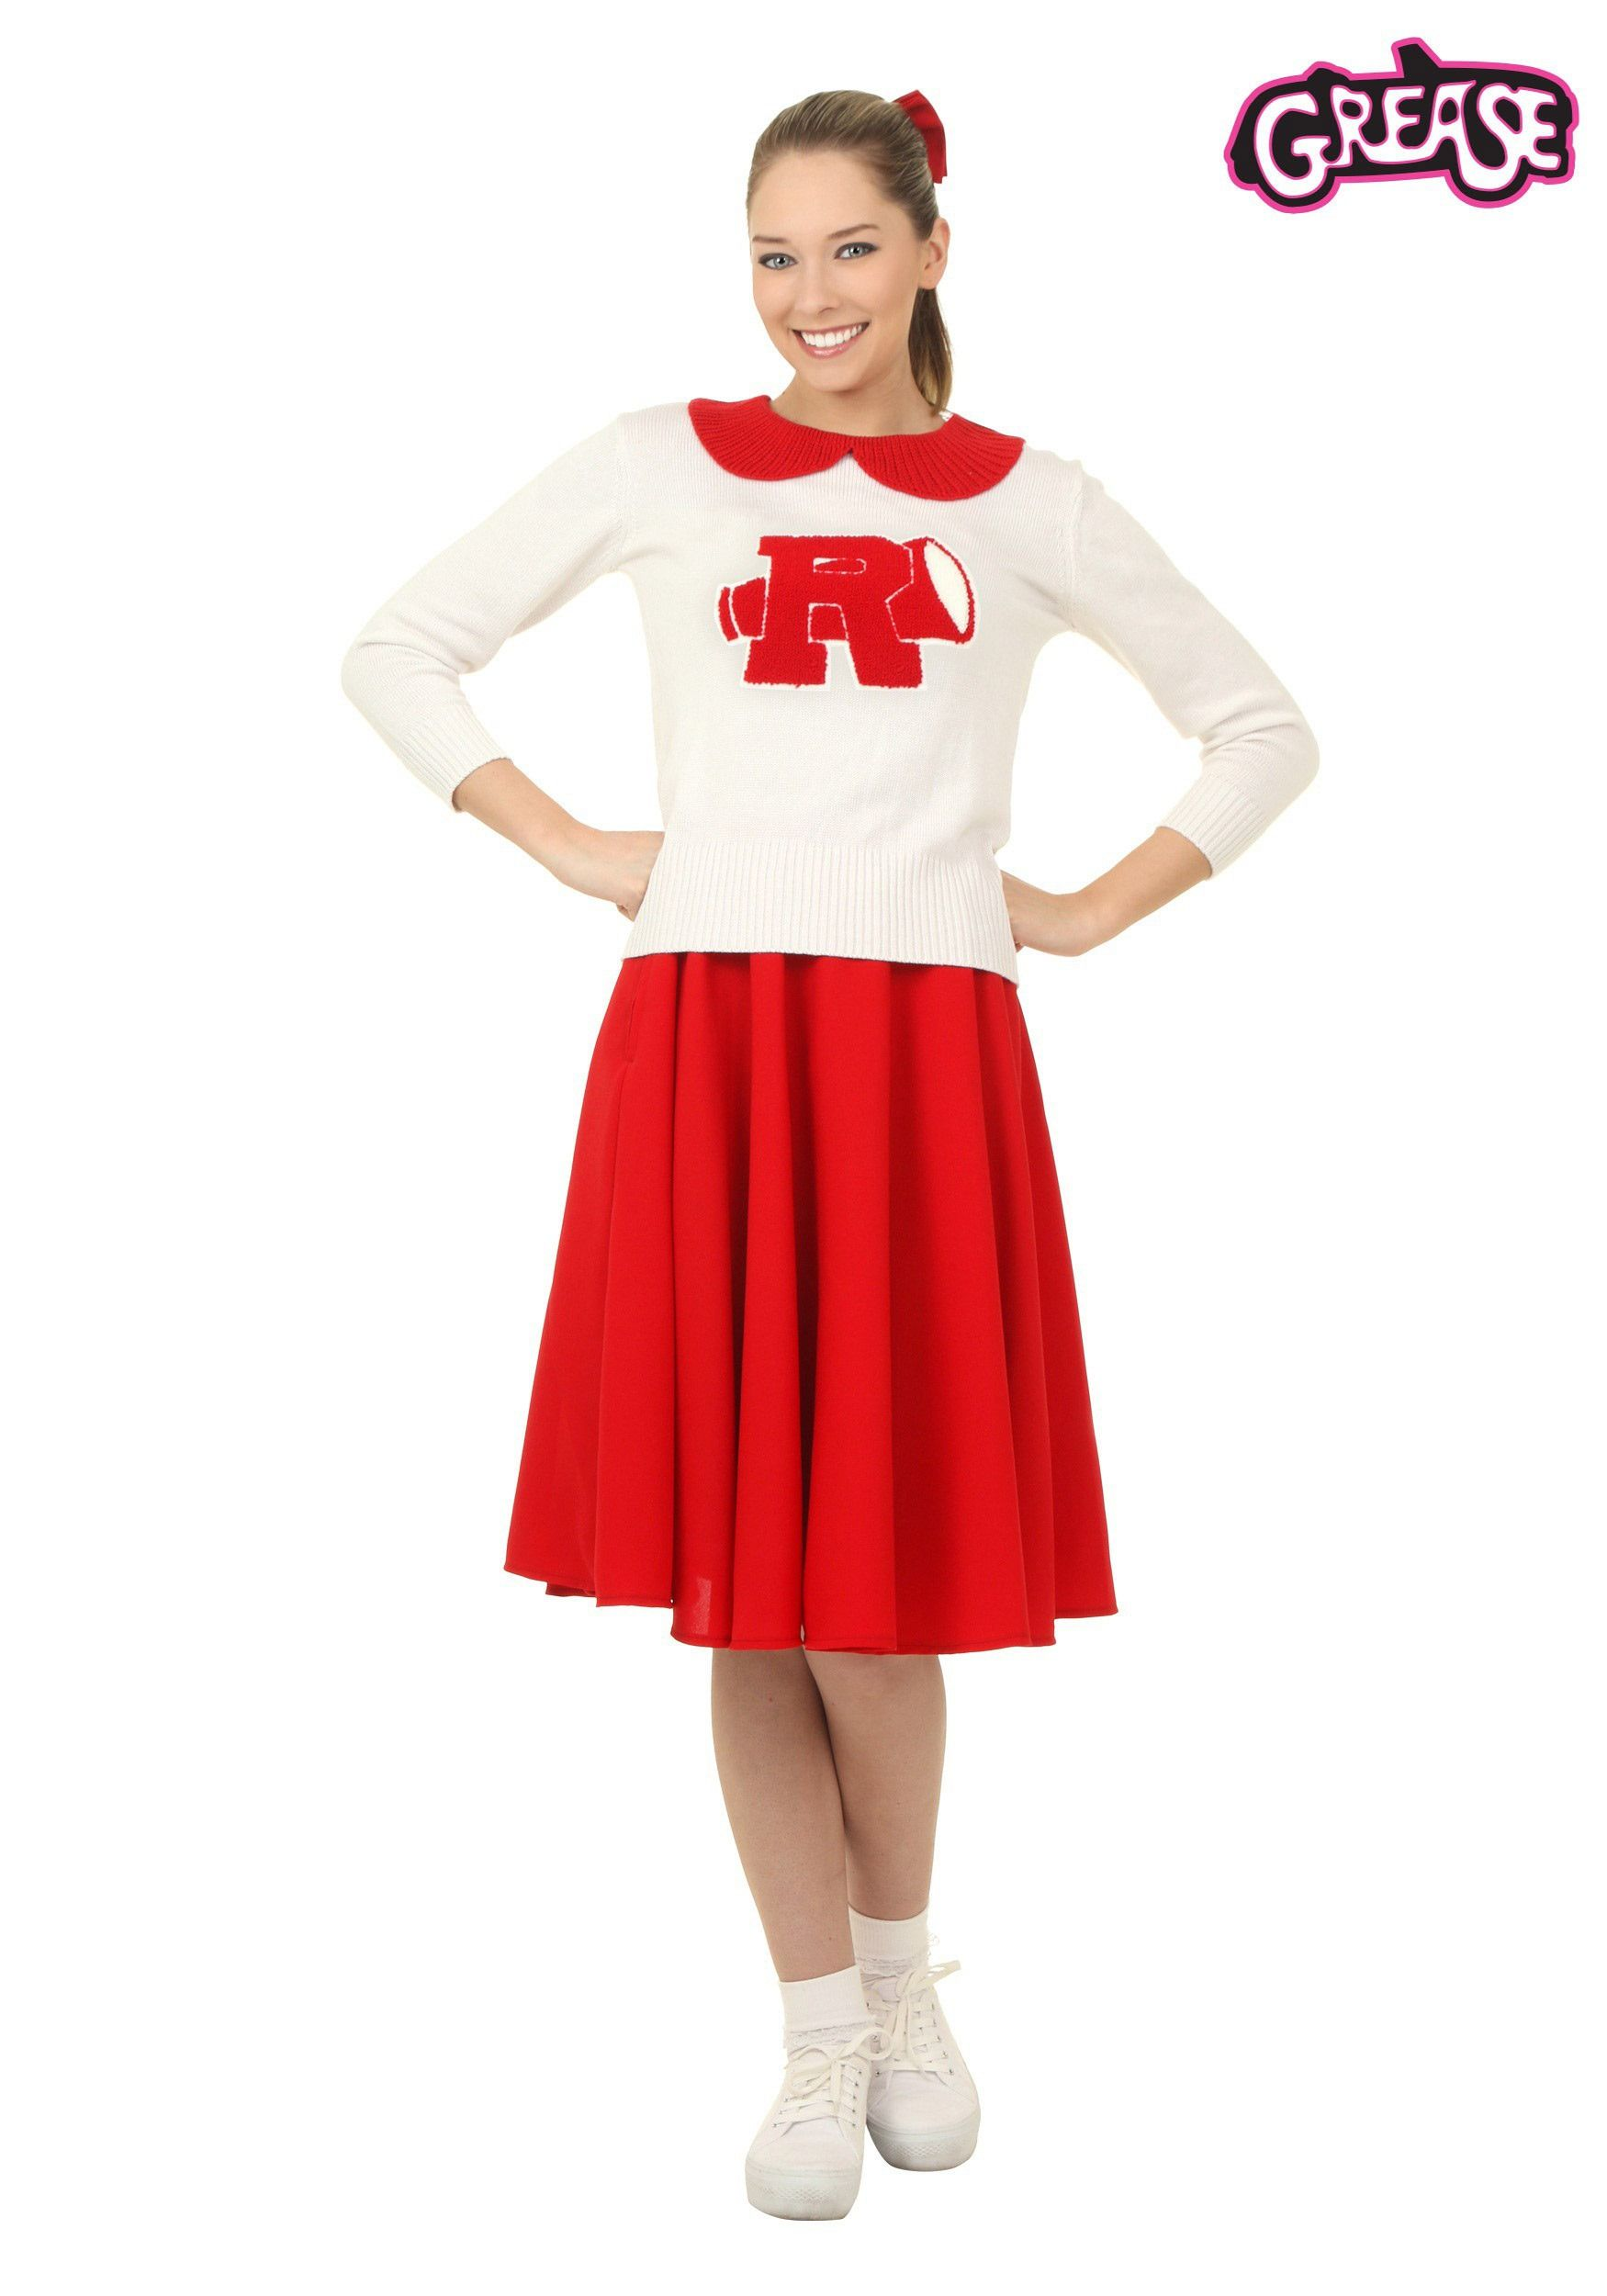 Women's Grease Rydell High Cheerleader Costume ...